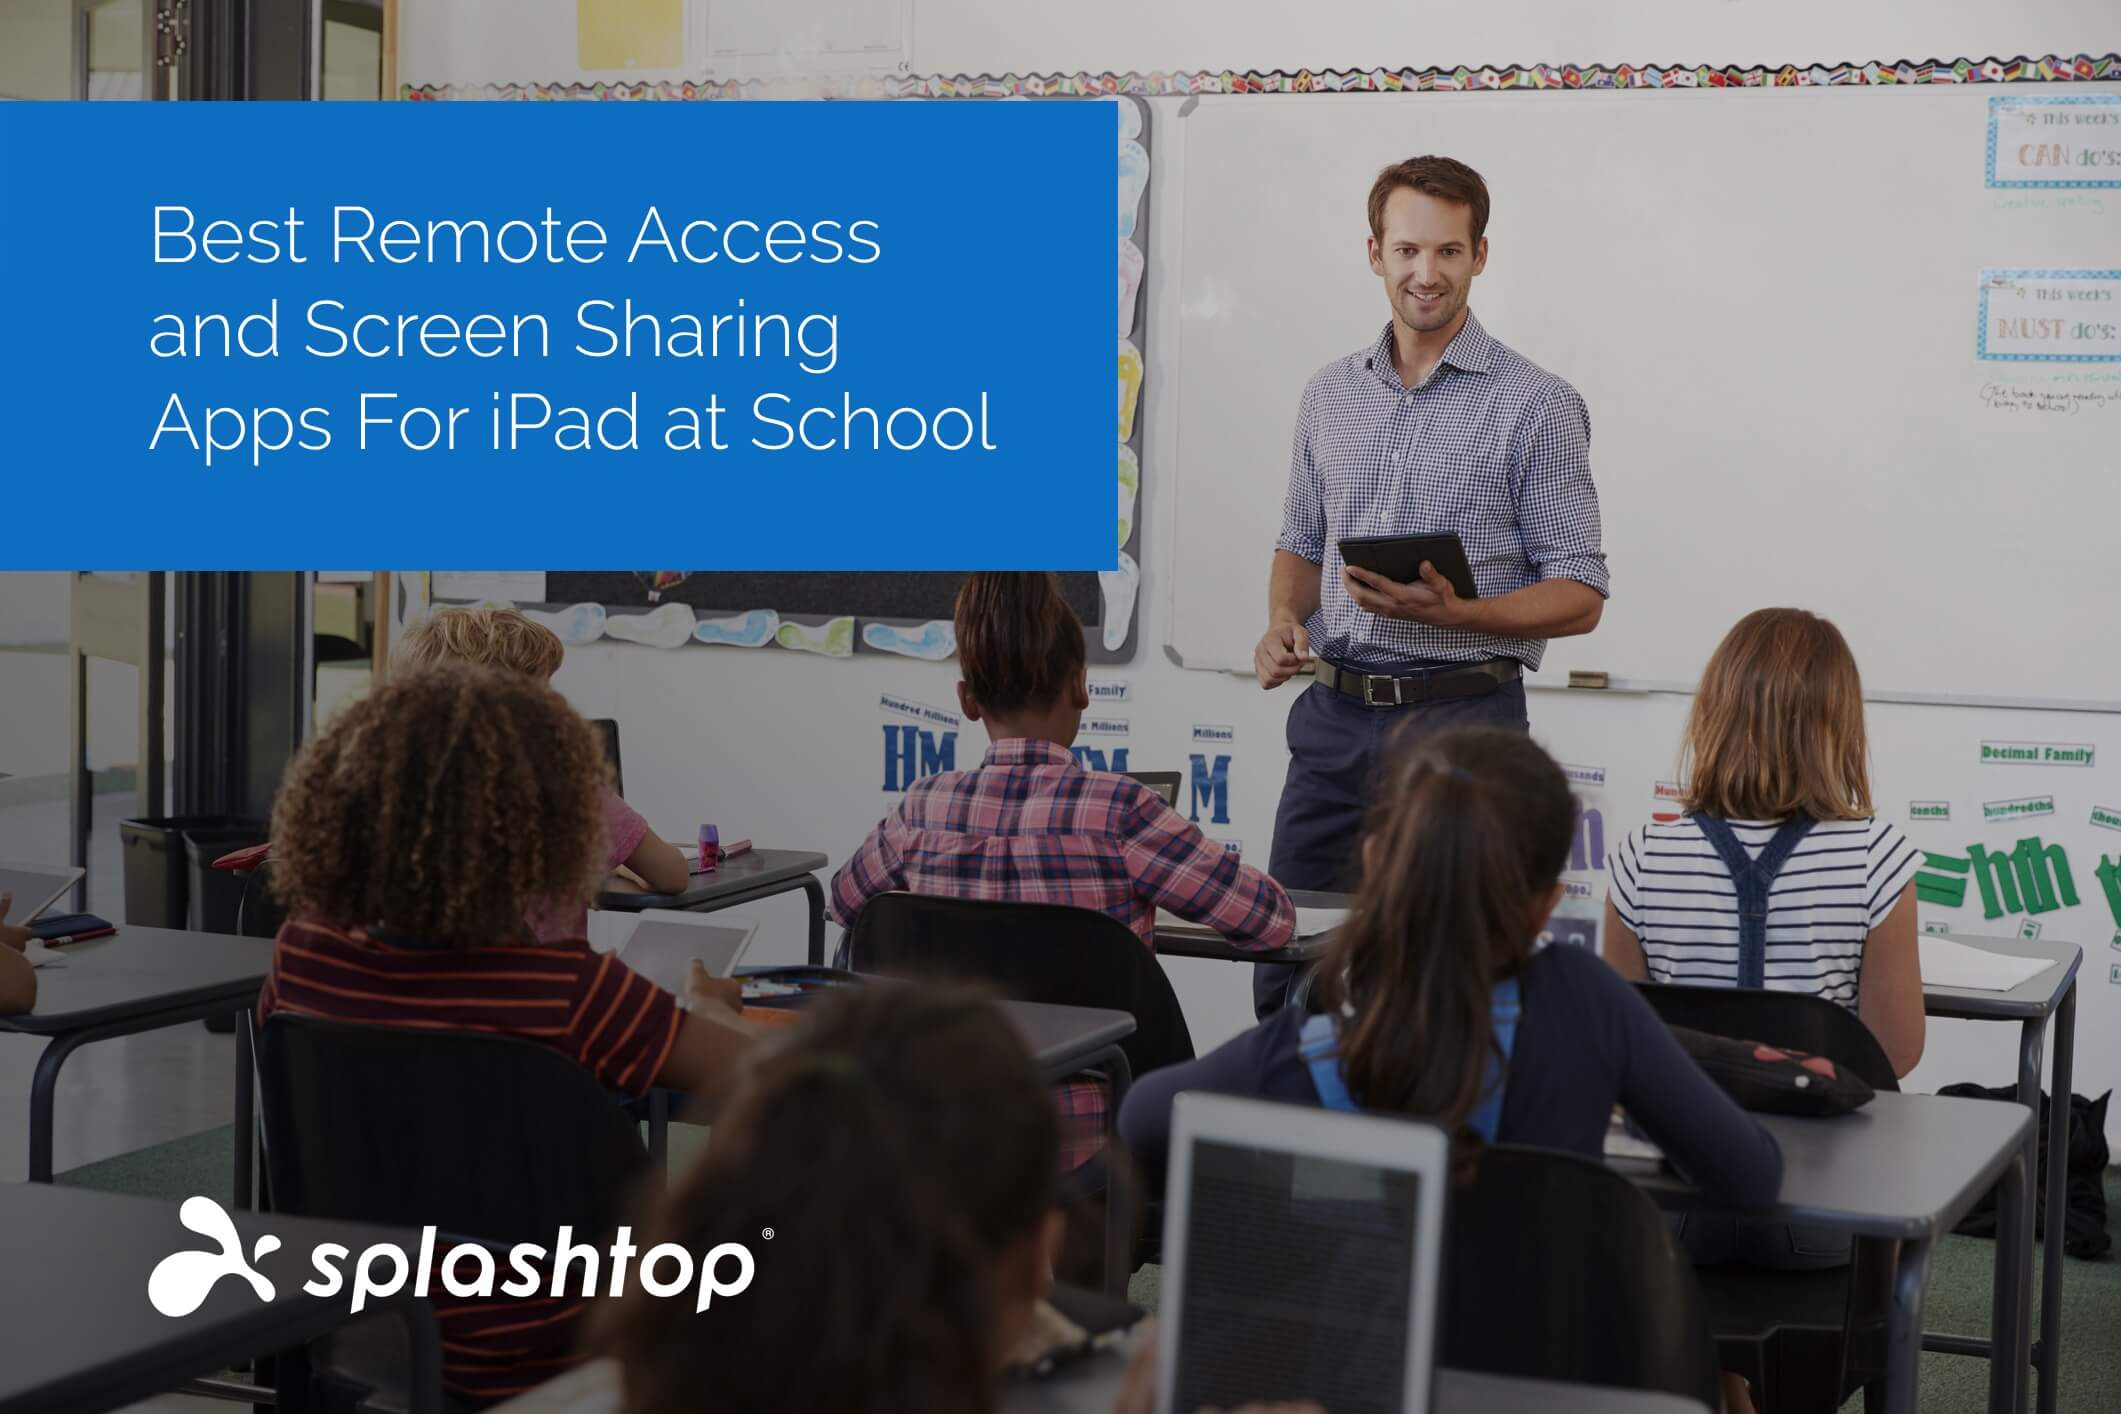 Best Remote Access & Screen Sharing App for iPad at School